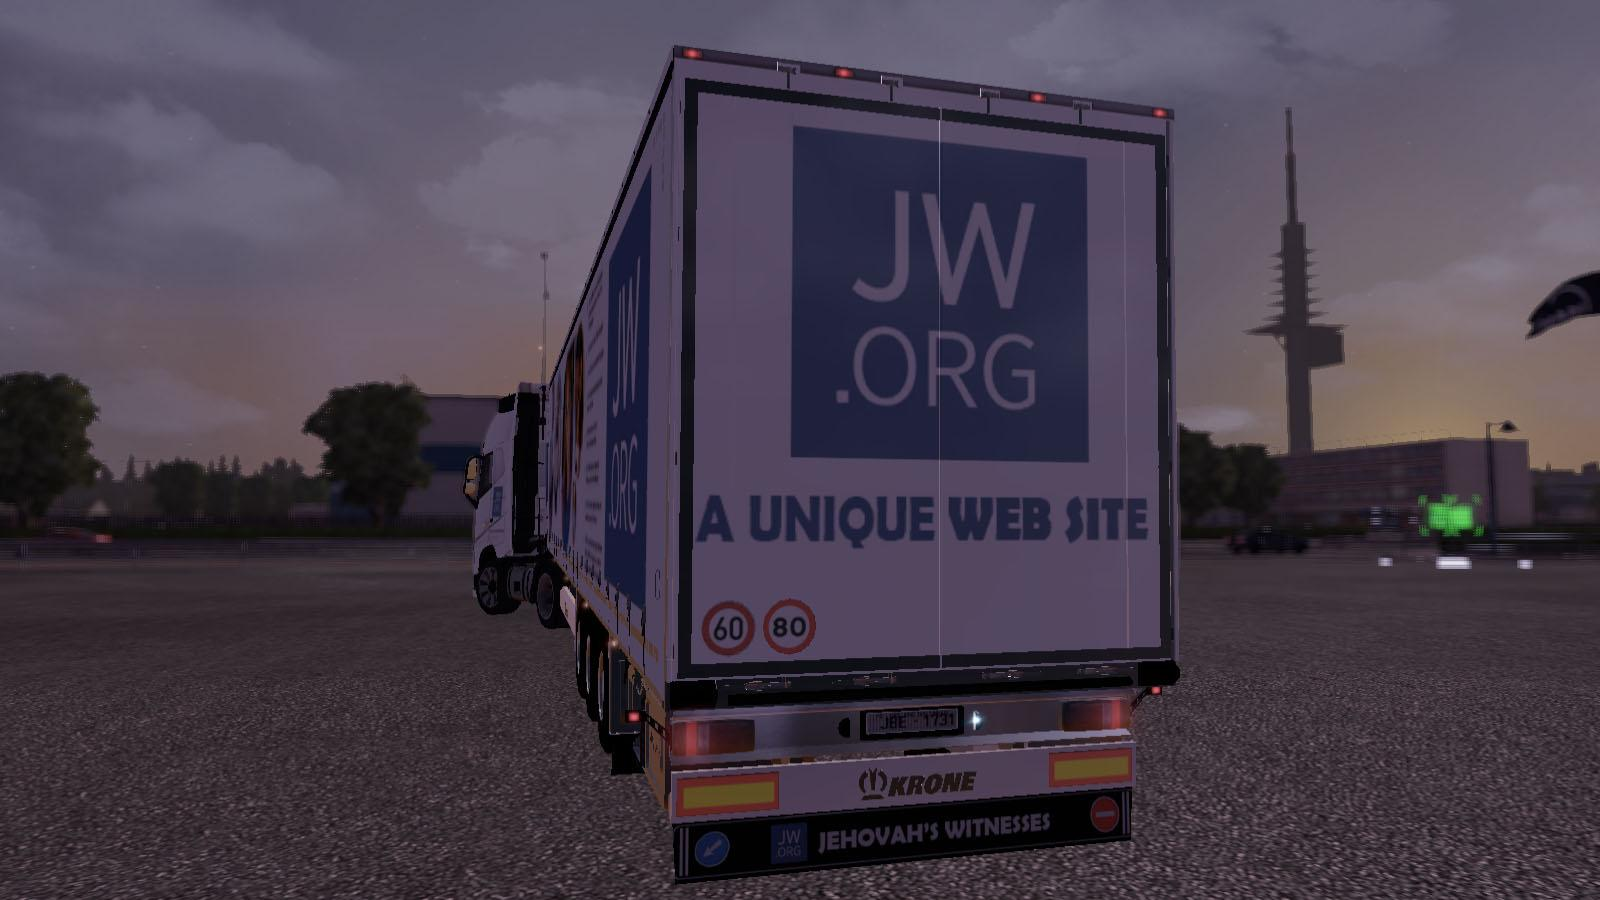 Must see Wallpaper Logo Jw Org - volvo-fh-2012-jw-org-combo-pack-1-0_3  Snapshot_808980.jpg